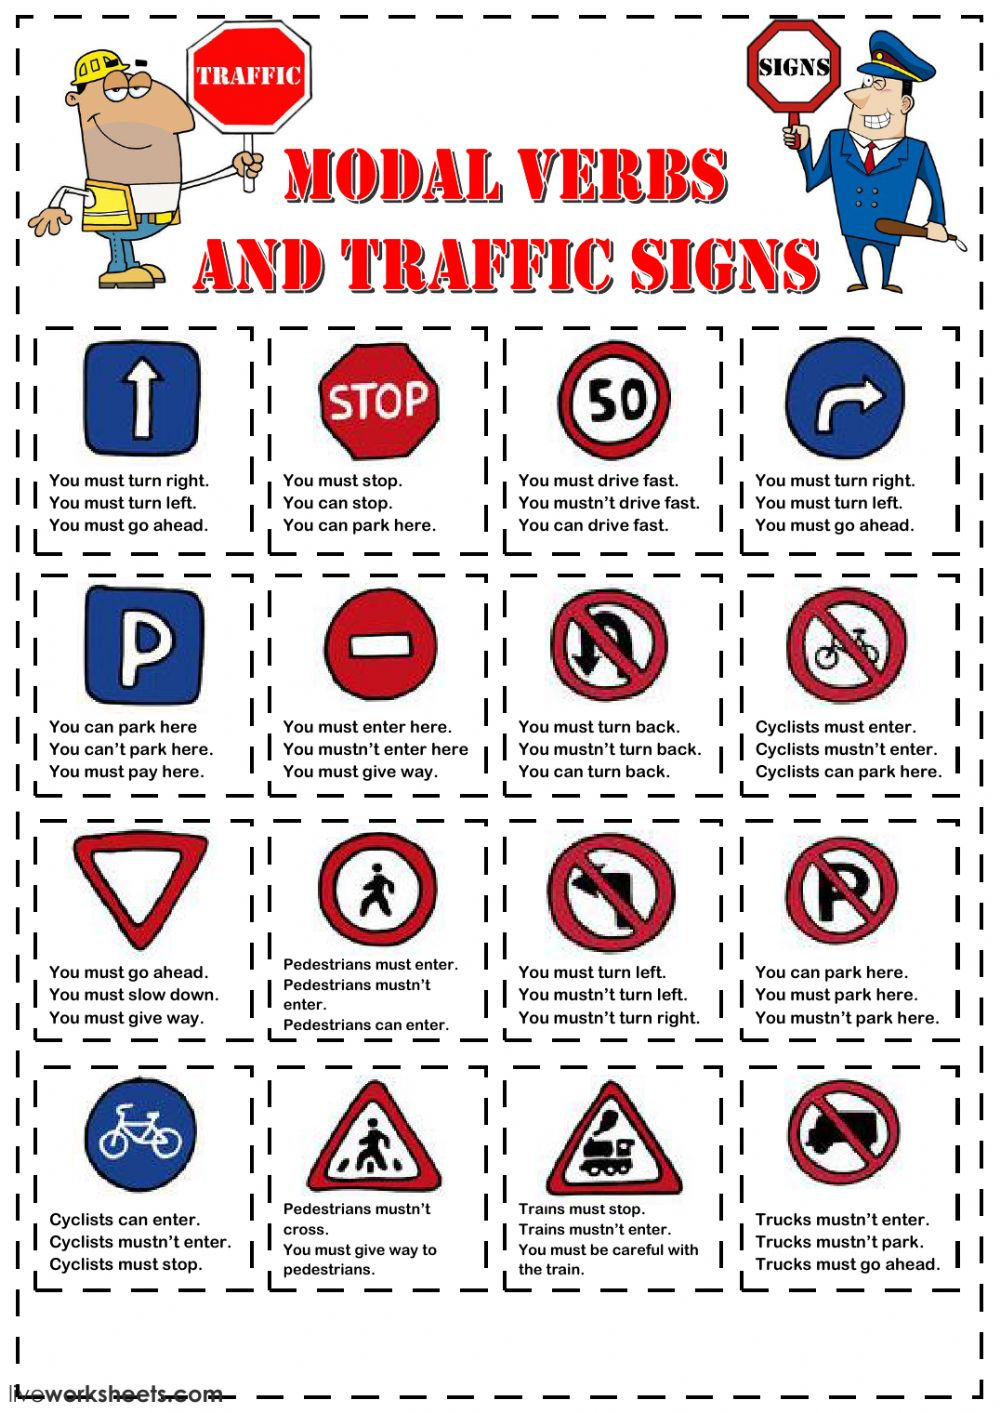 Worksheets Traffic Signs Worksheets modal verbs and traffic signs interactive worksheet text